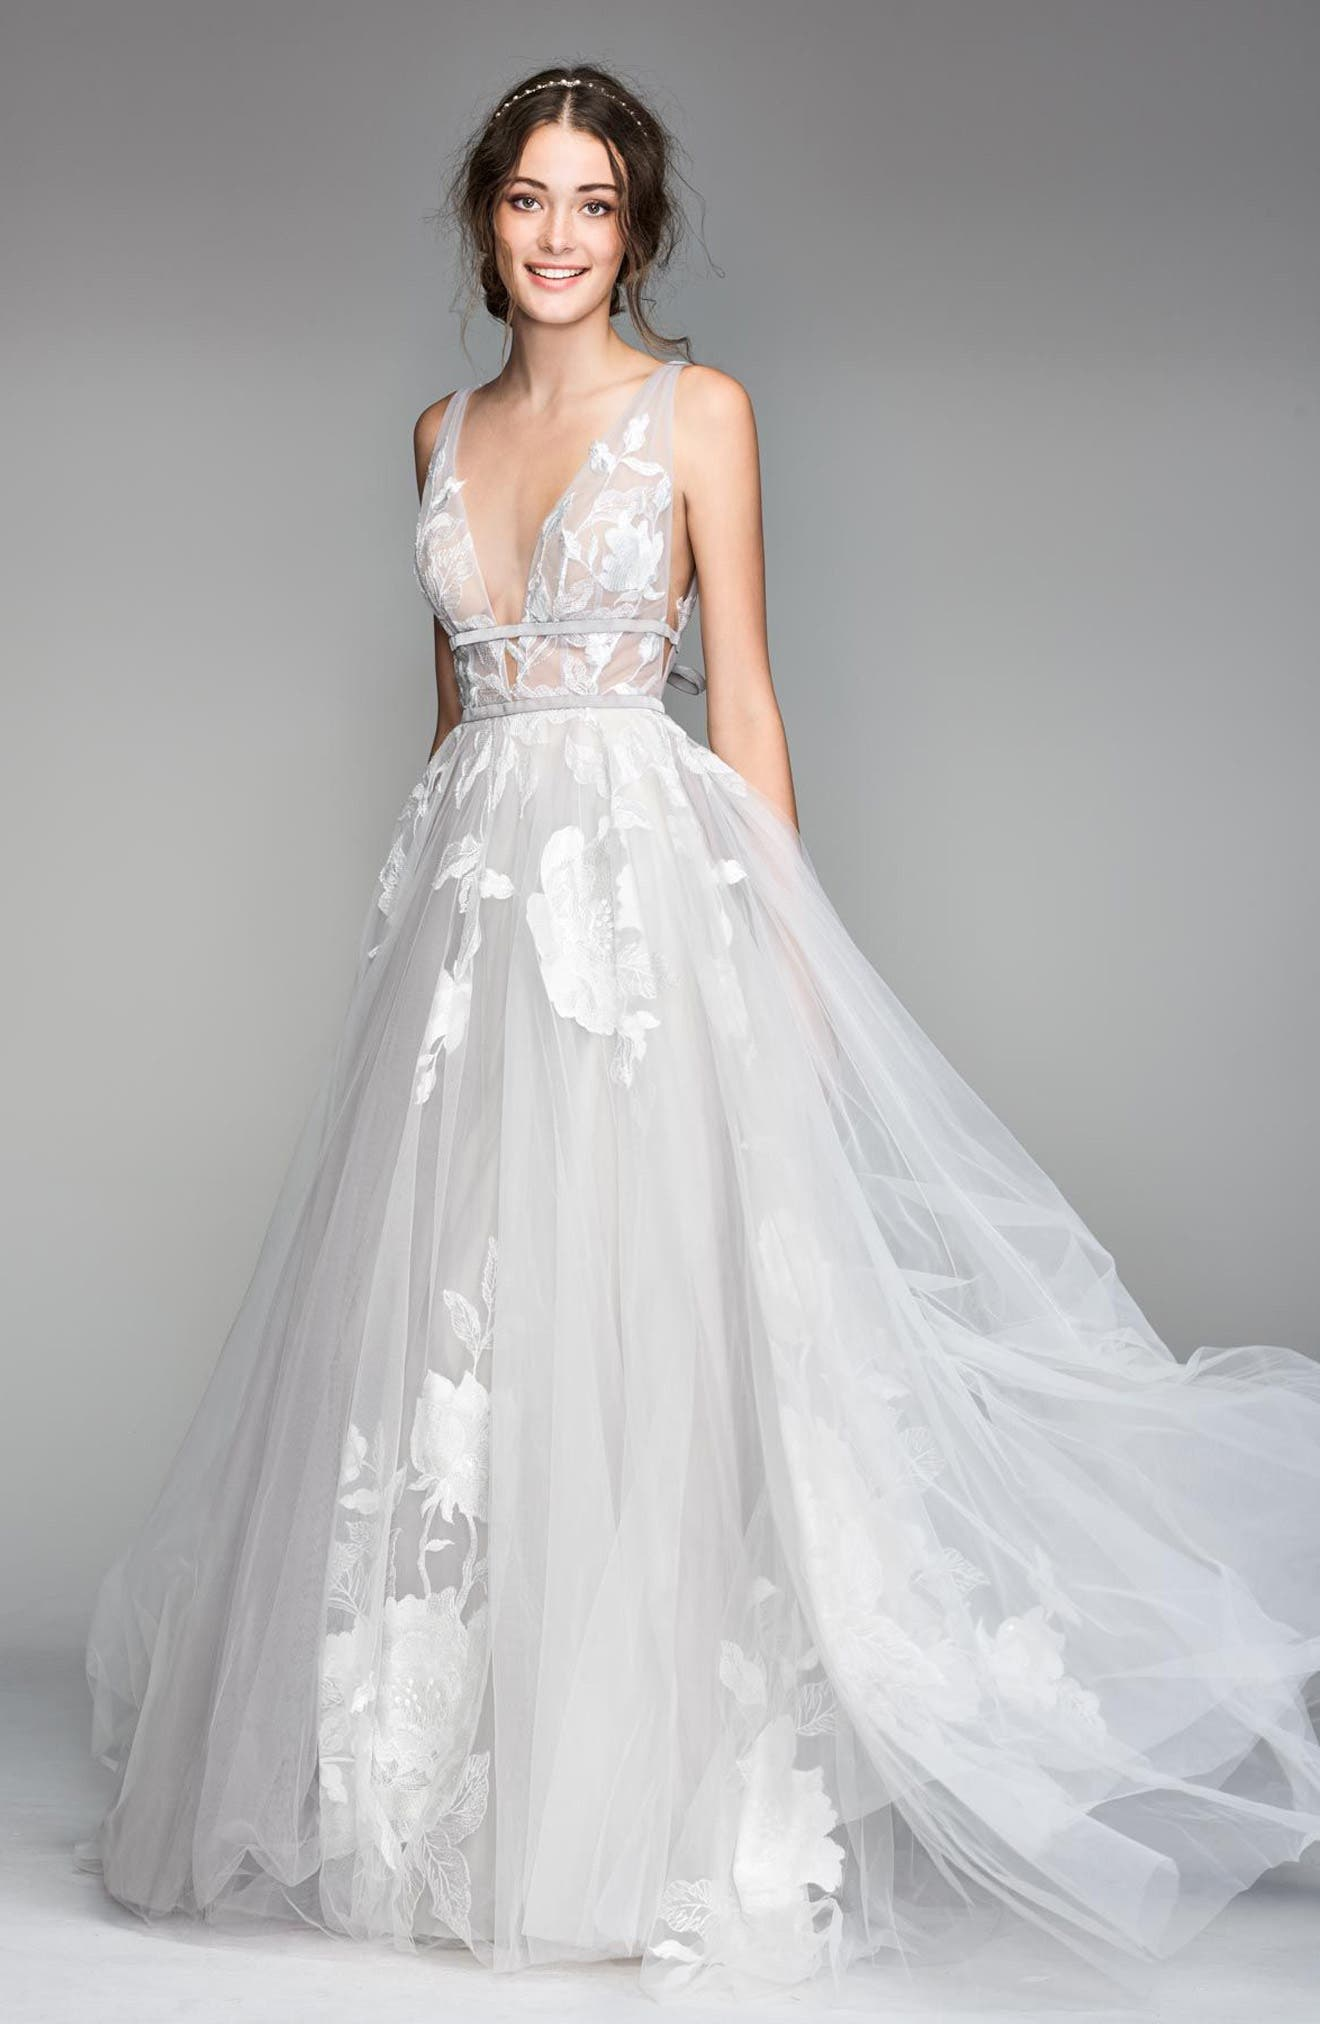 Main Image - Willowby Galatea Embroidered Tulle Ballgown